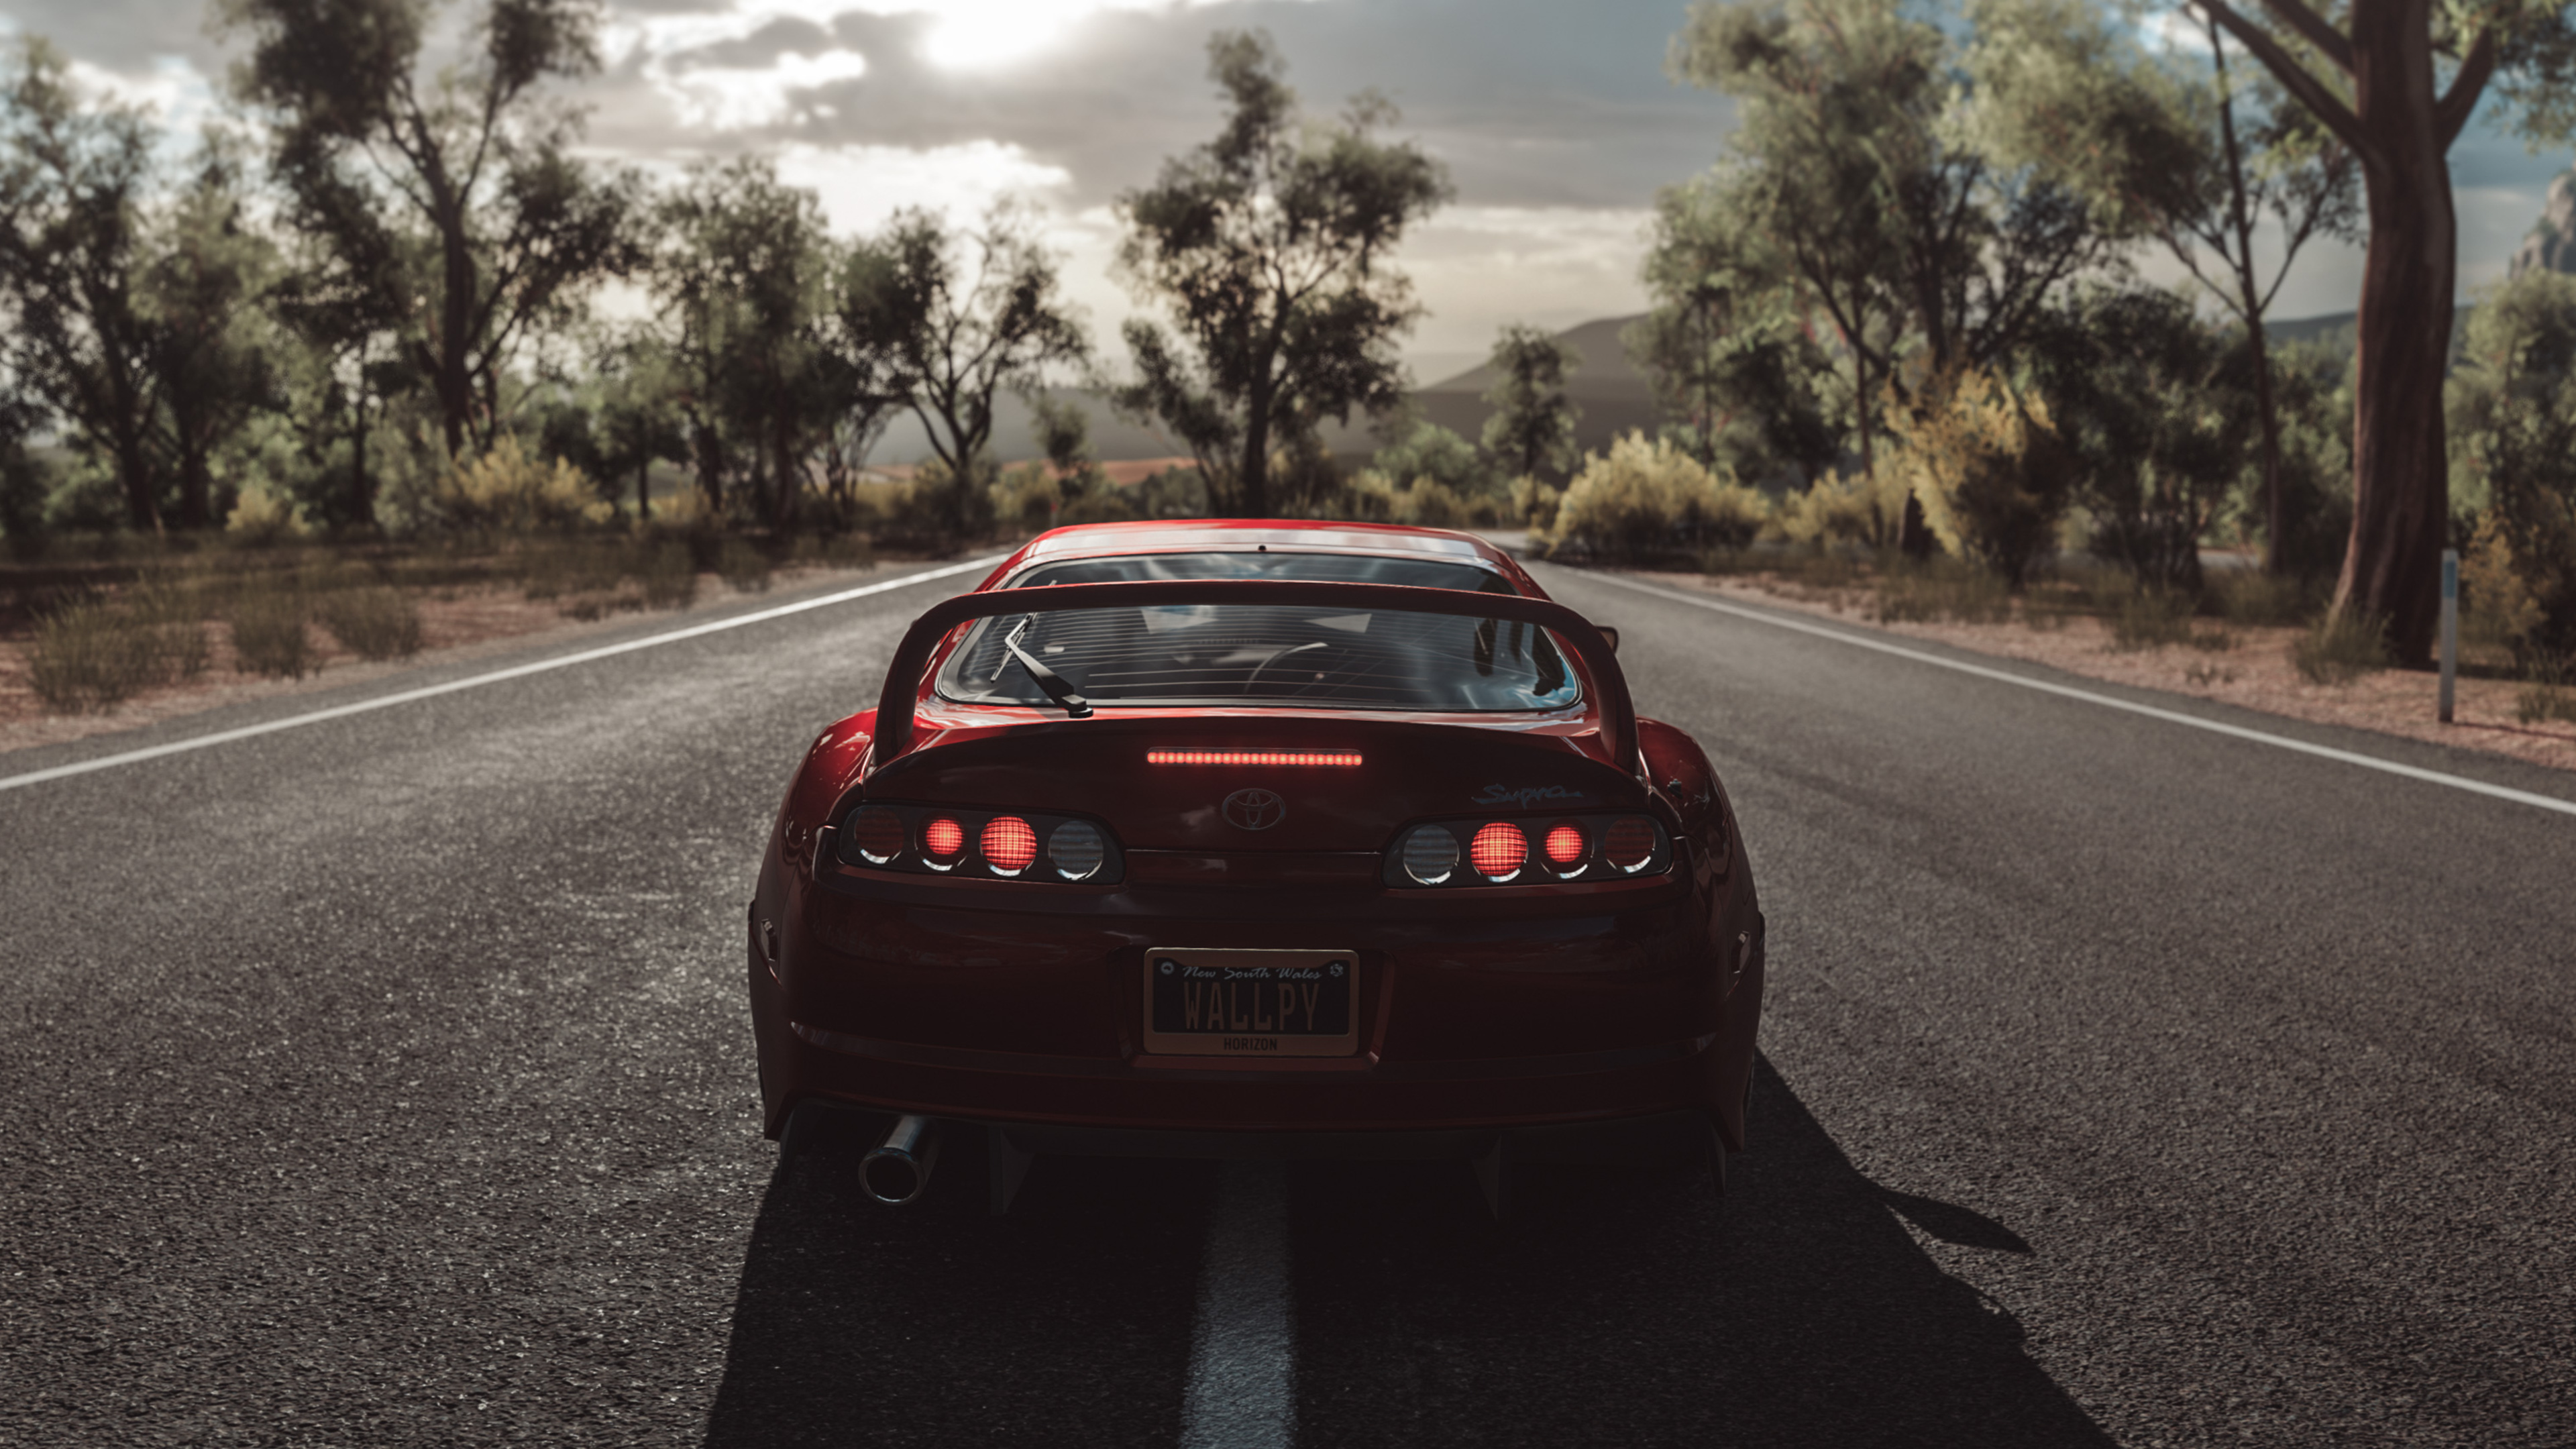 3840x2160 forza horizon 3 toyota supra 4k hd 4k wallpapers images backgrounds photos and pictures - Forza logo wallpaper ...